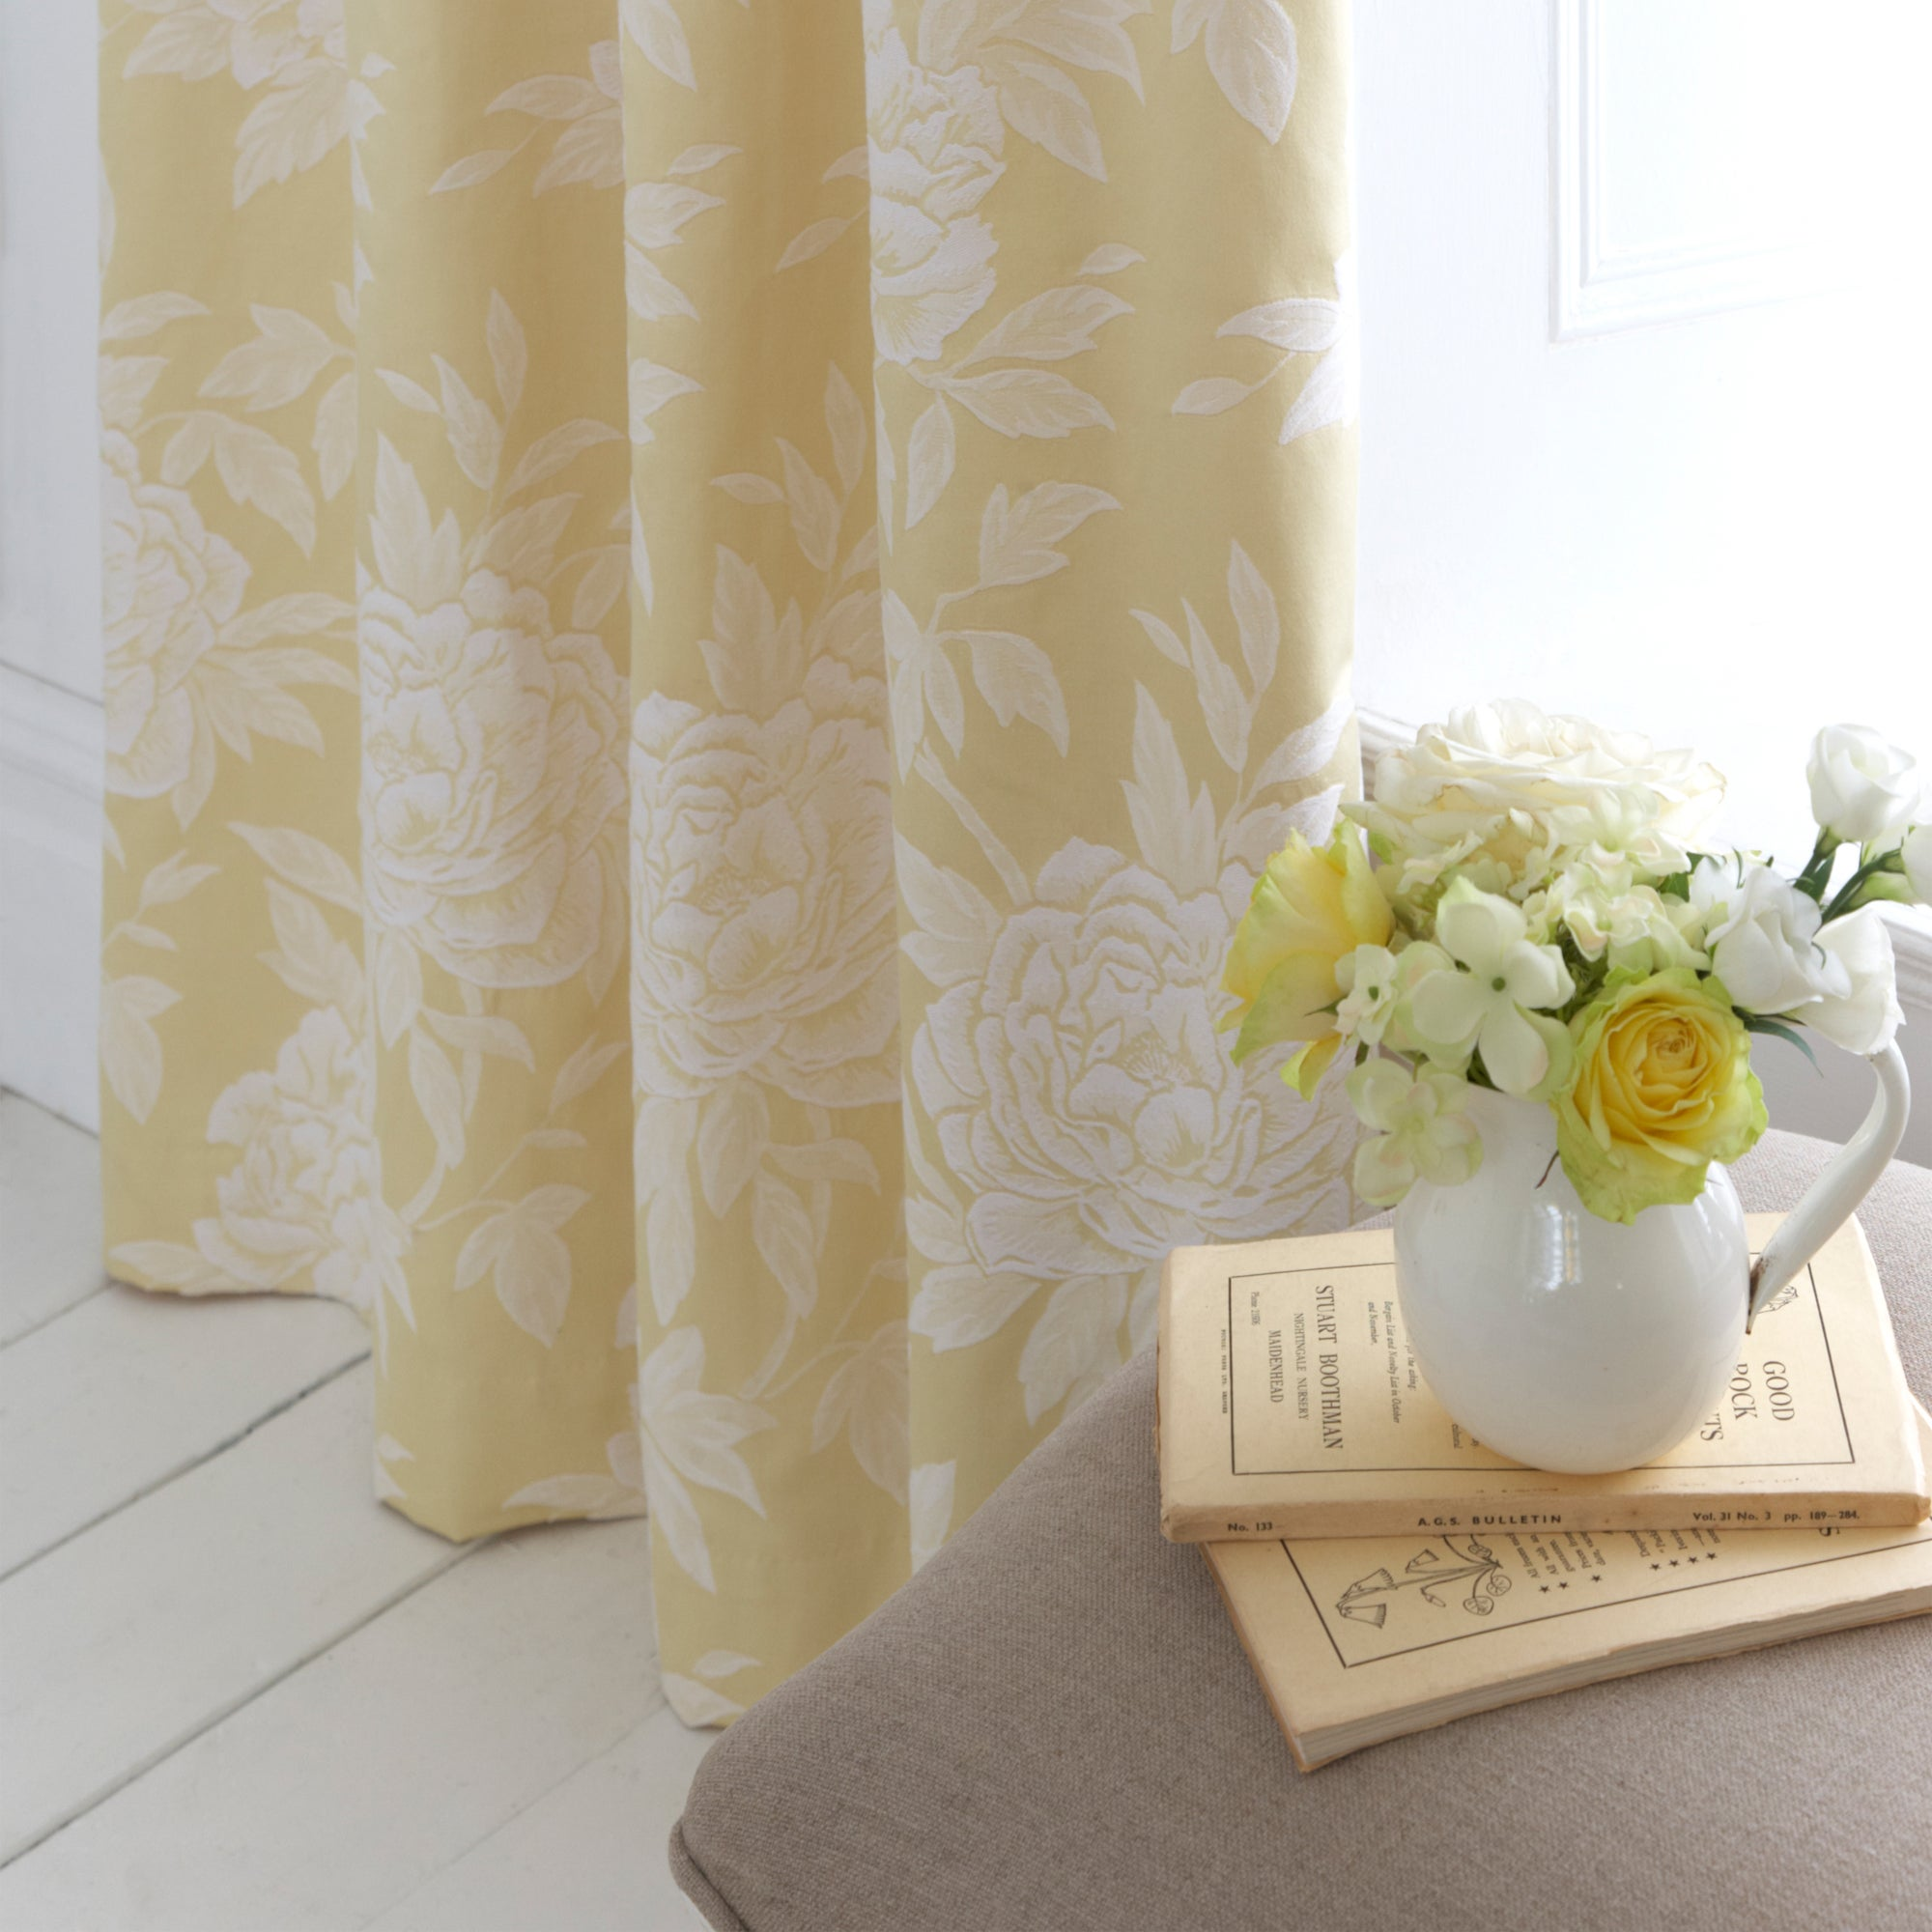 Dorma Lemon Chatsworth Lined Pencil Pleat Curtains